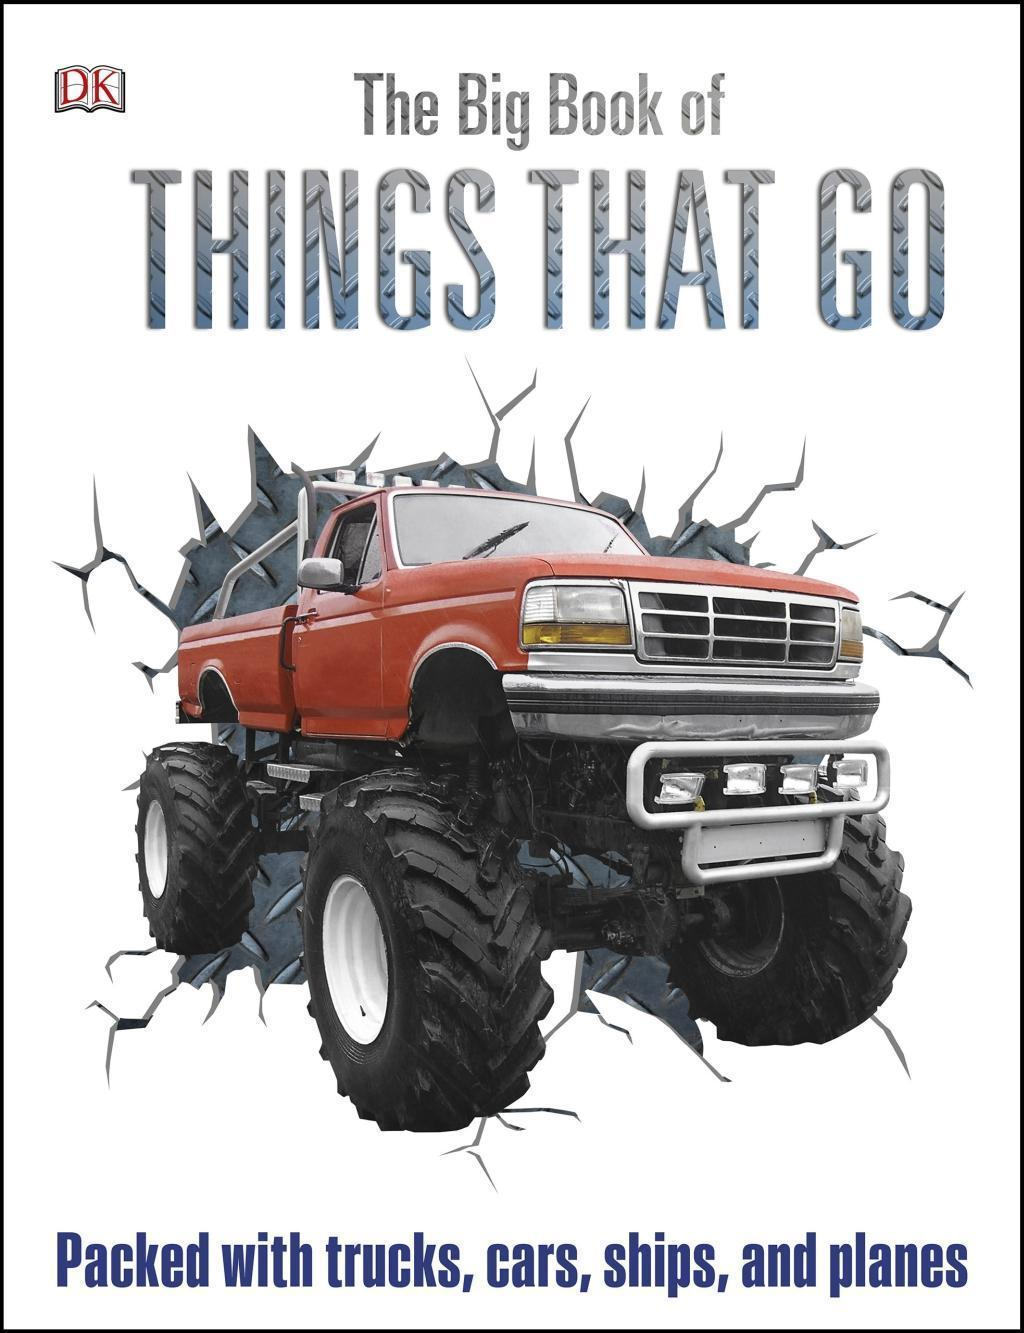 The Big Book of Things That Go